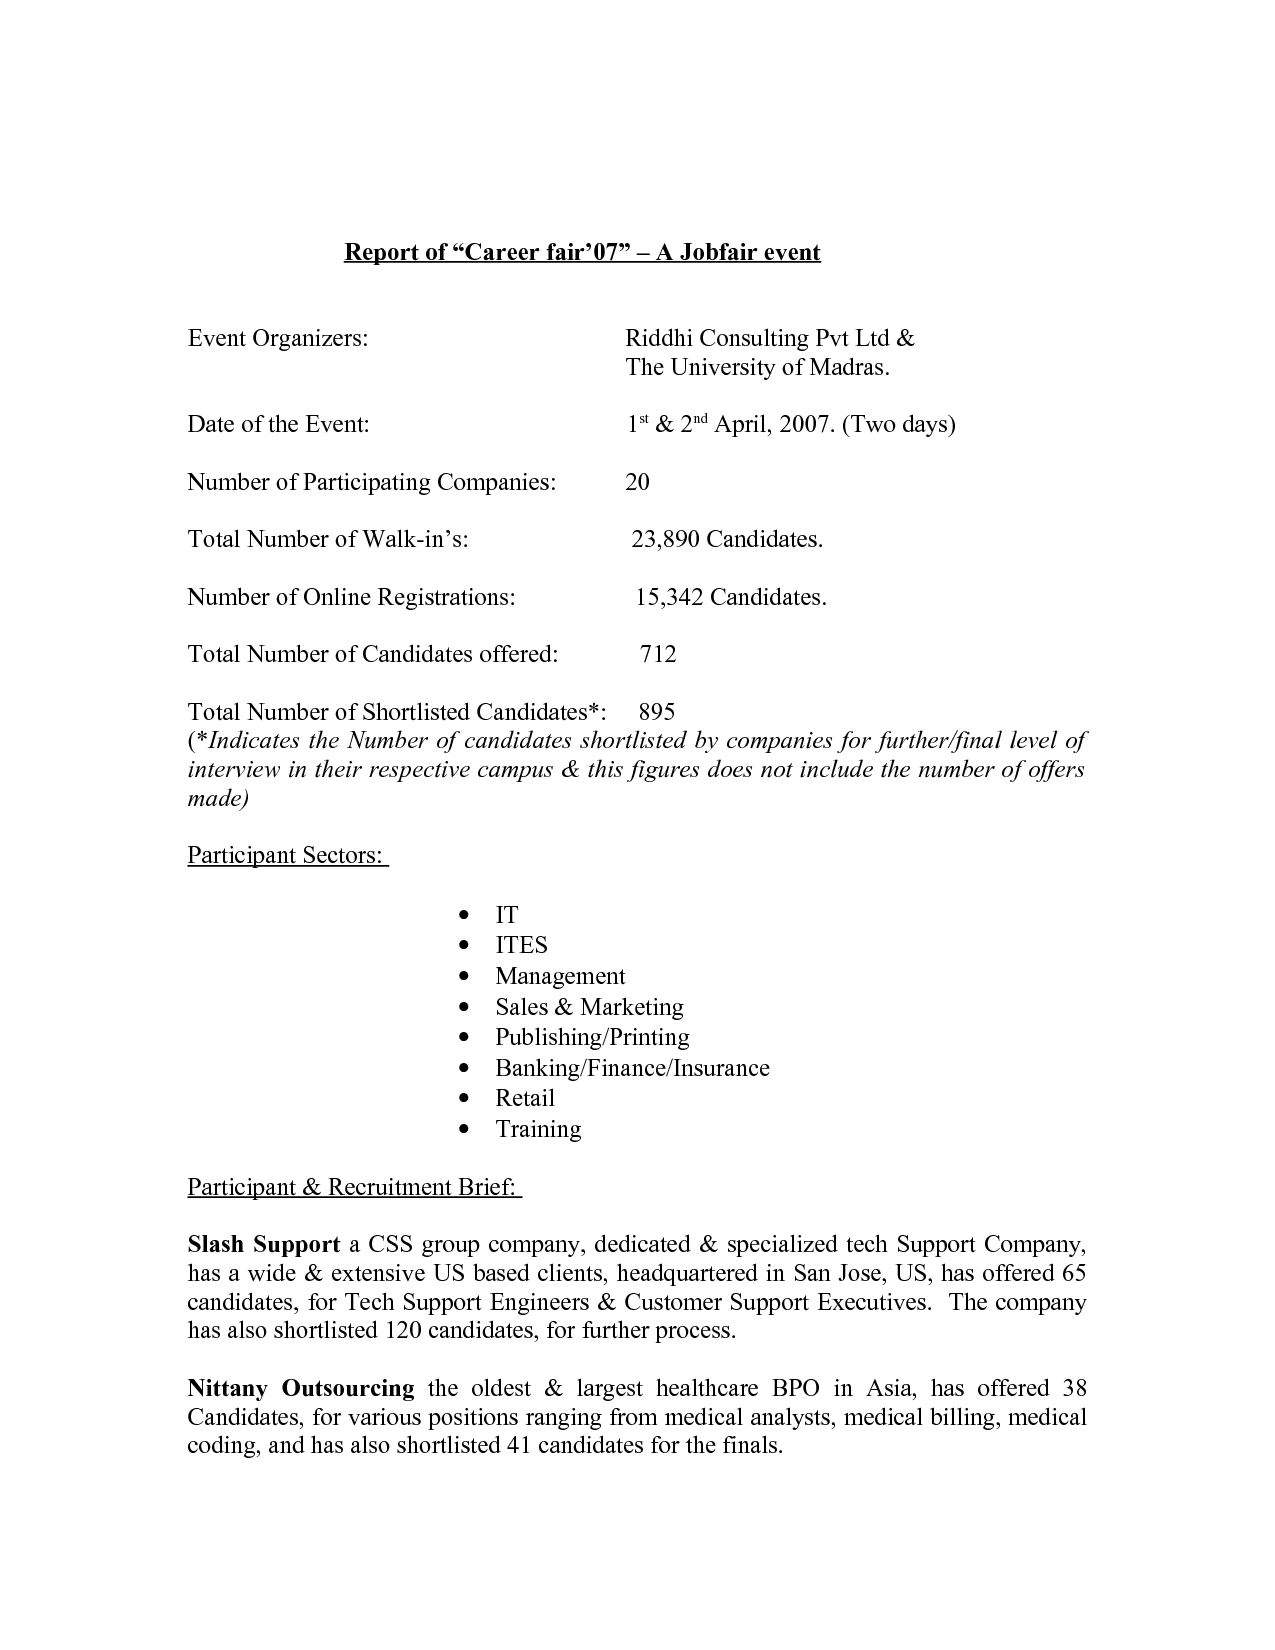 Resume Format For Freshers Free Download Resume Format For Freshers Free  Download, Resume Format For  Resume Formats Free Download